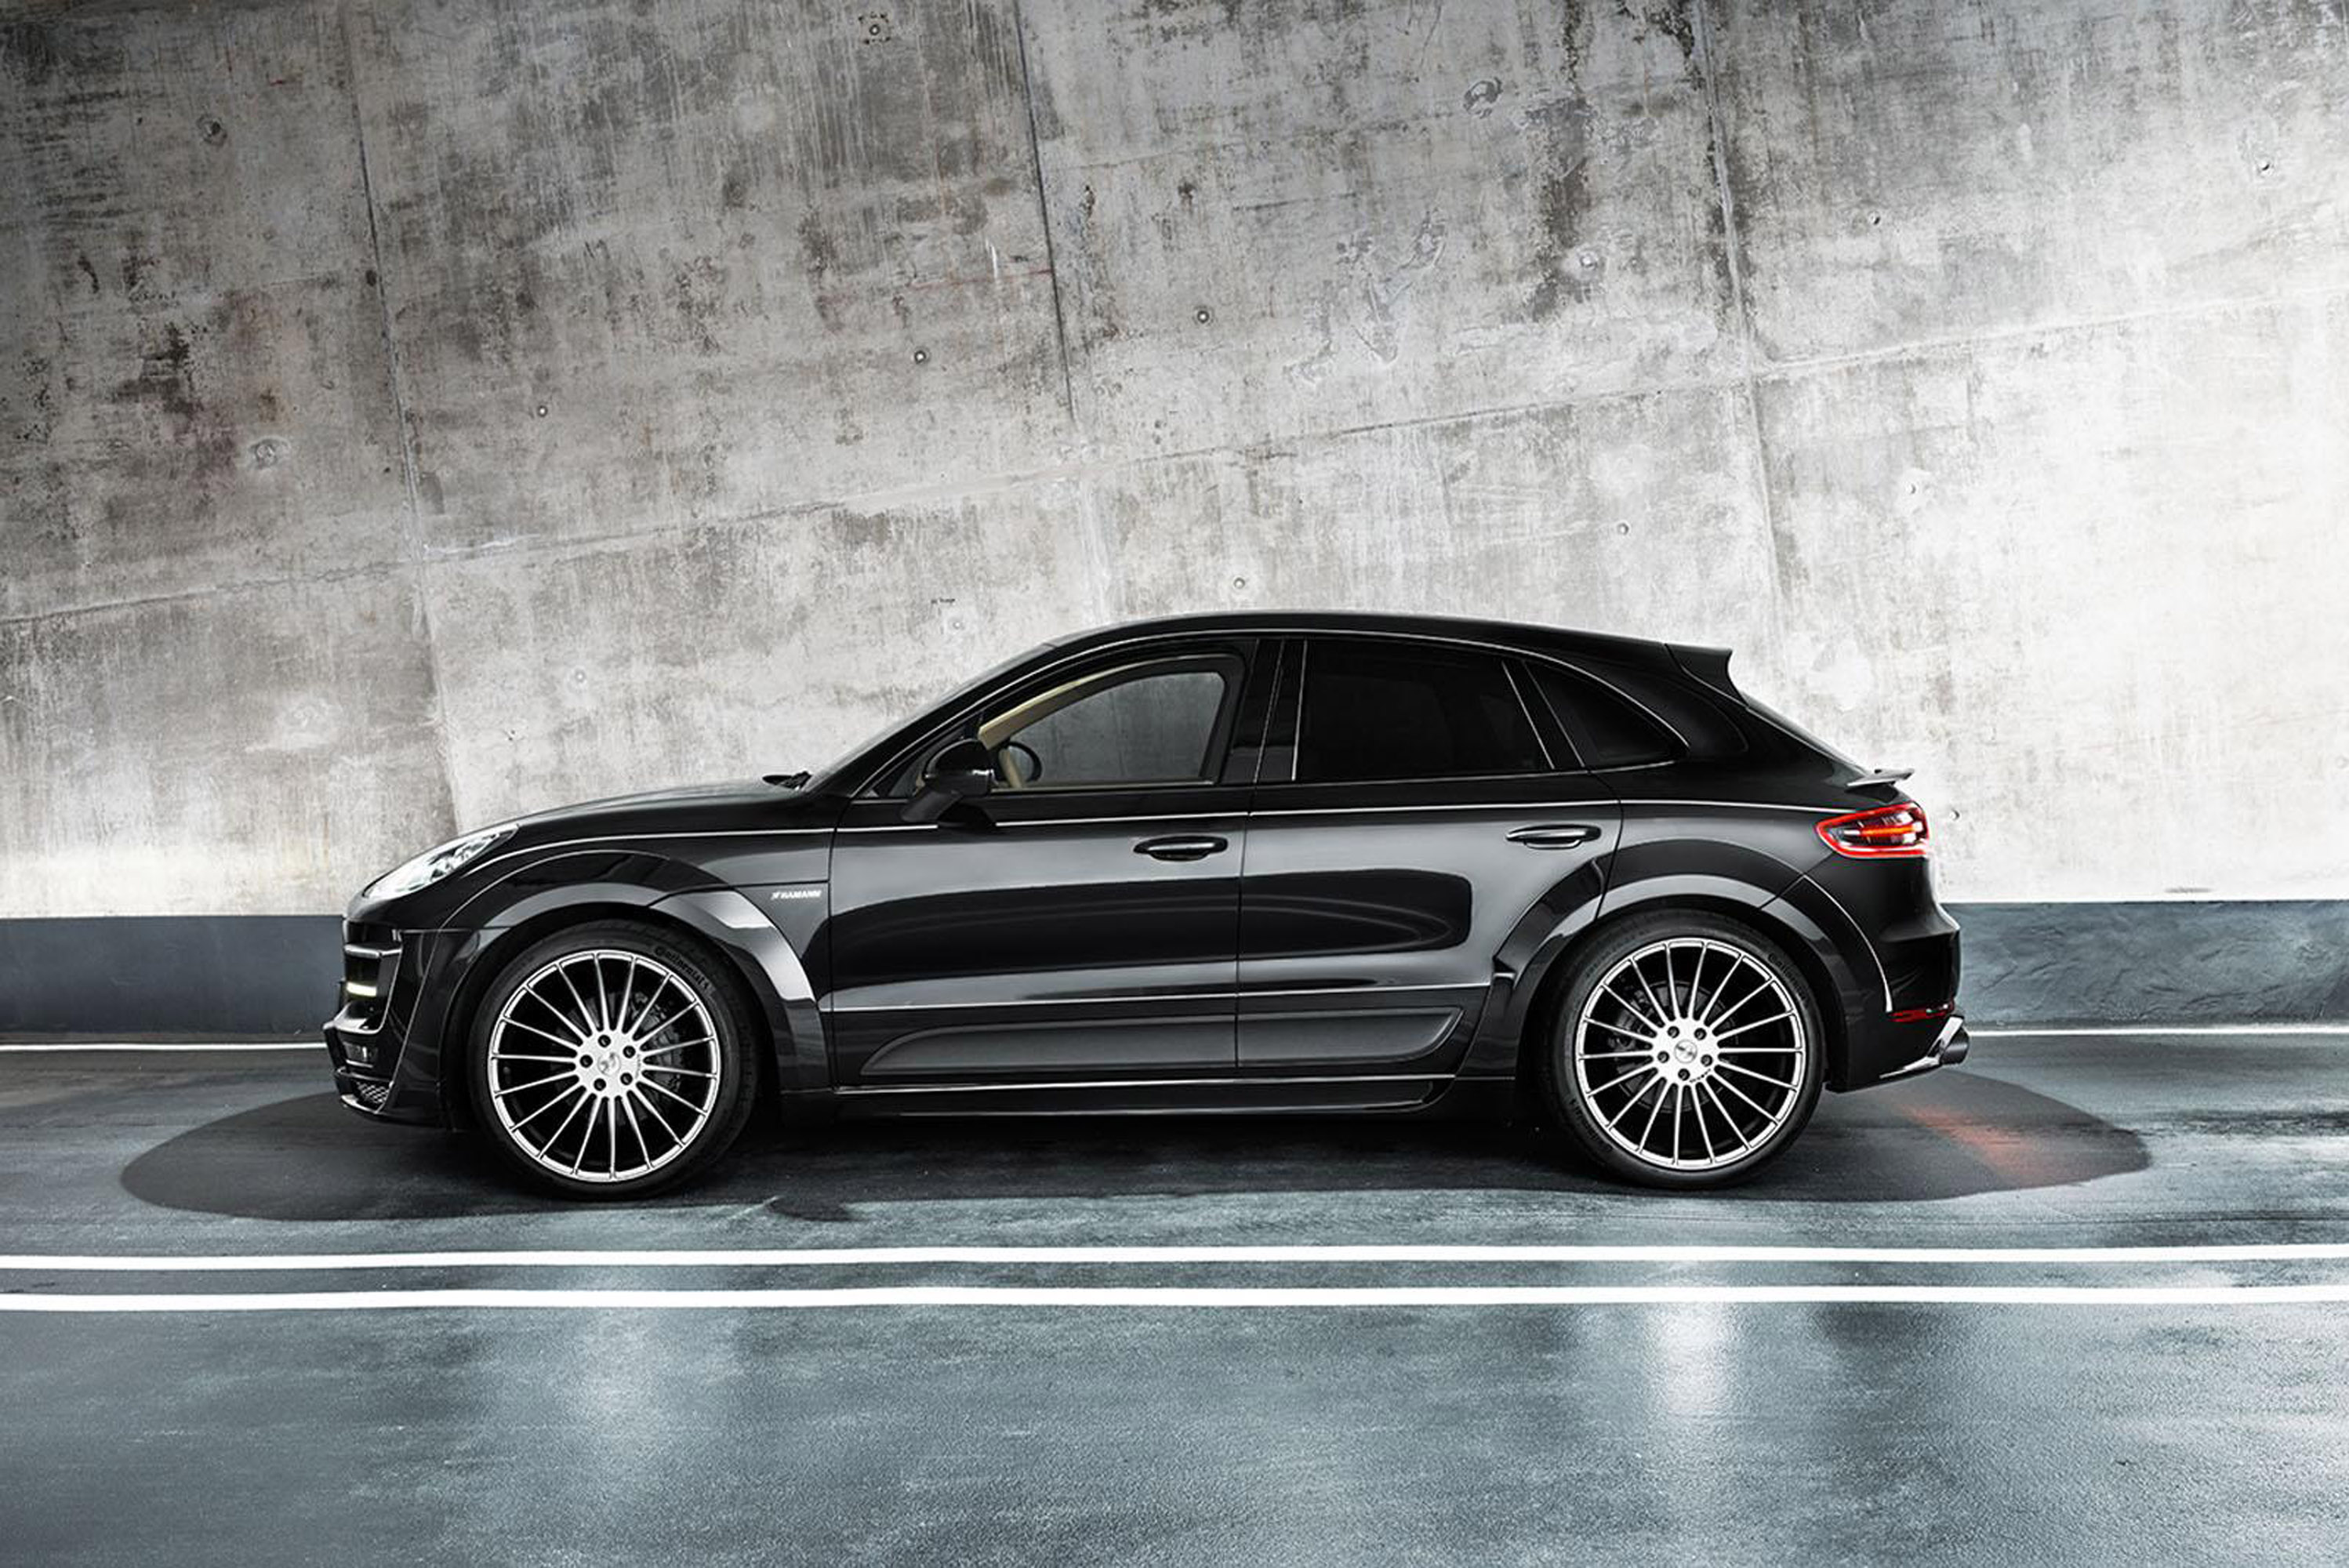 hamann macan s diesel comes with upgraded engine and restyled looks. Black Bedroom Furniture Sets. Home Design Ideas